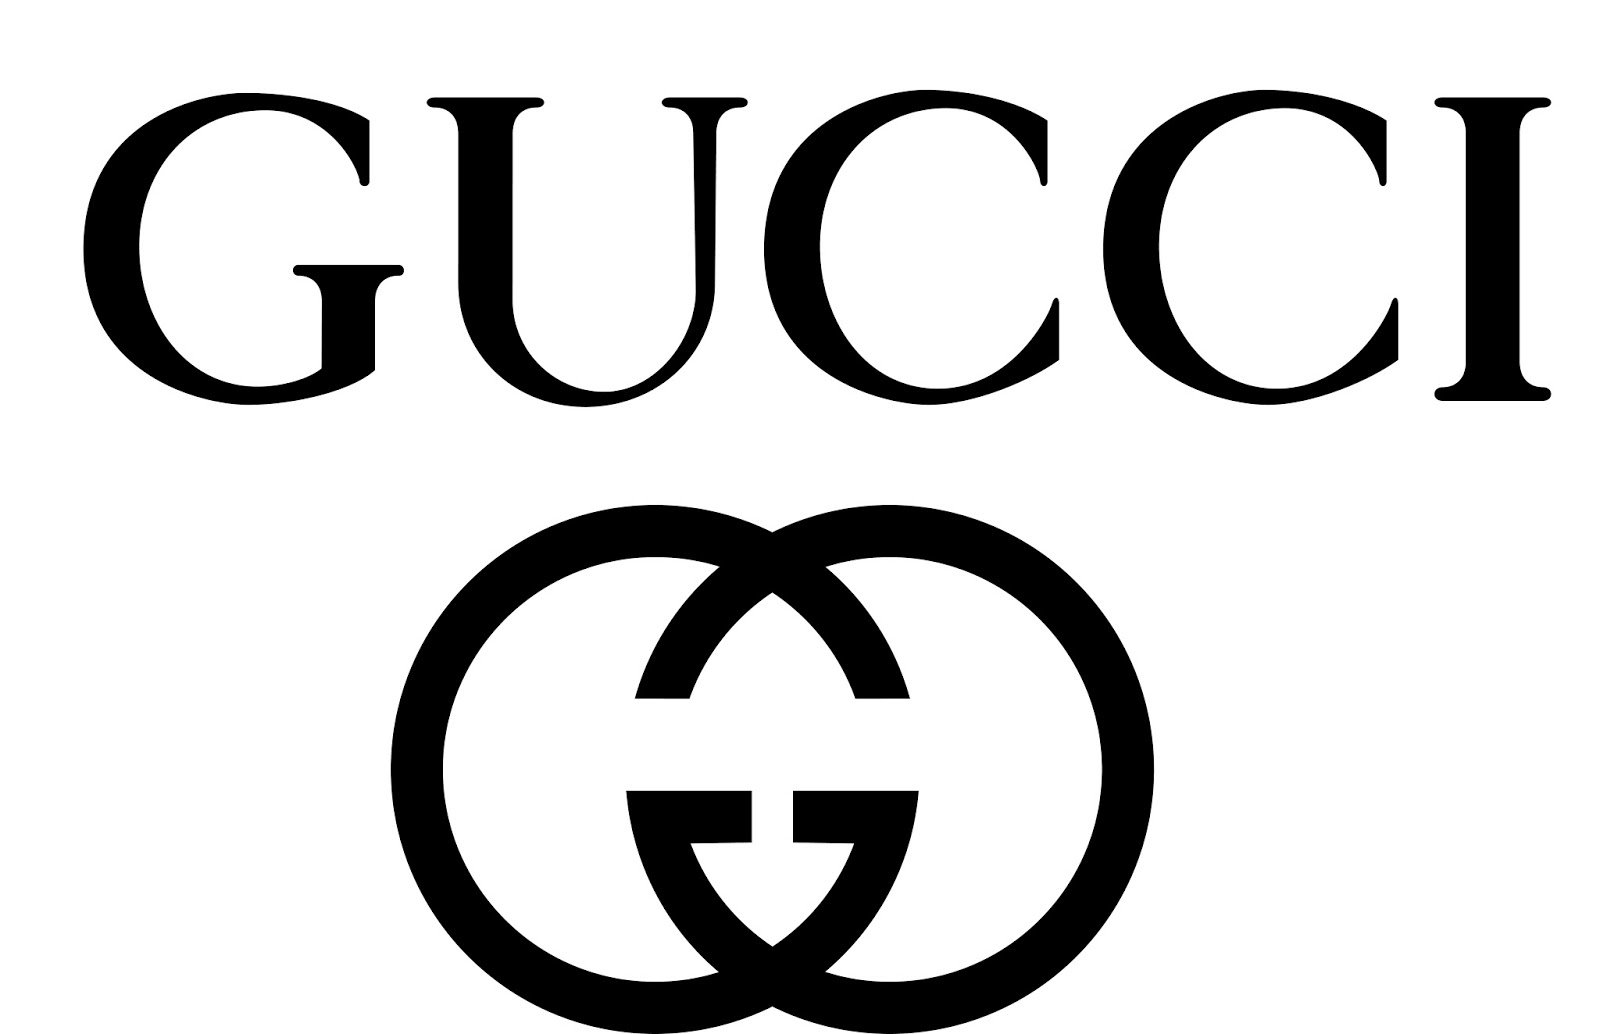 Prada Gucci Among Worlds Top Fashion Brands on Worlds